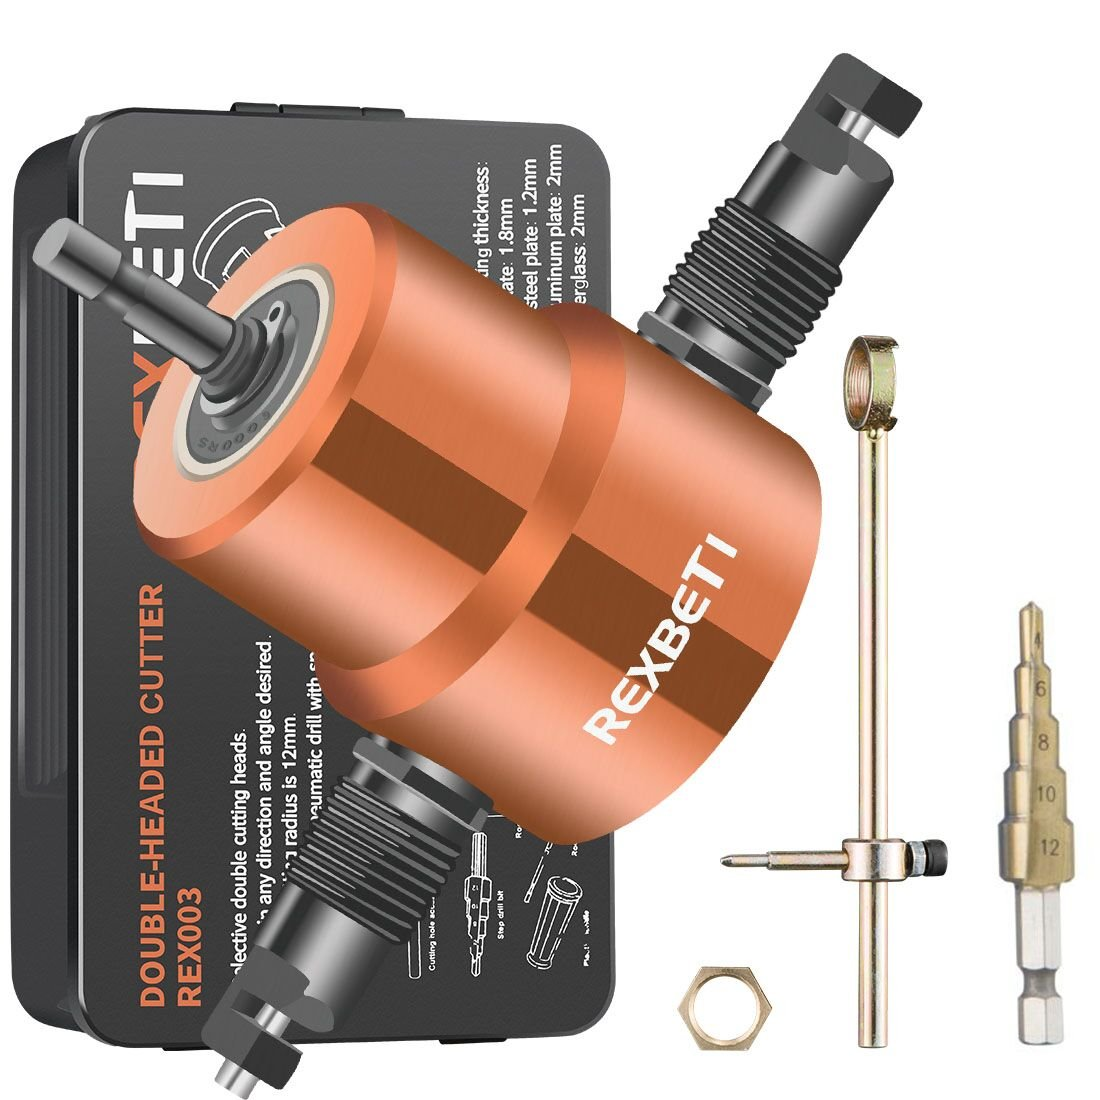 Double Headed Sheet Metal Nibbler 360 Degree, REXBETI Ultimate Metal Cutter for Straight Circle and Round Cutting, Burr-free Edge - Extra Punch and Die, 1 Cutting Hole Accessory and 1 Step Drill Bit